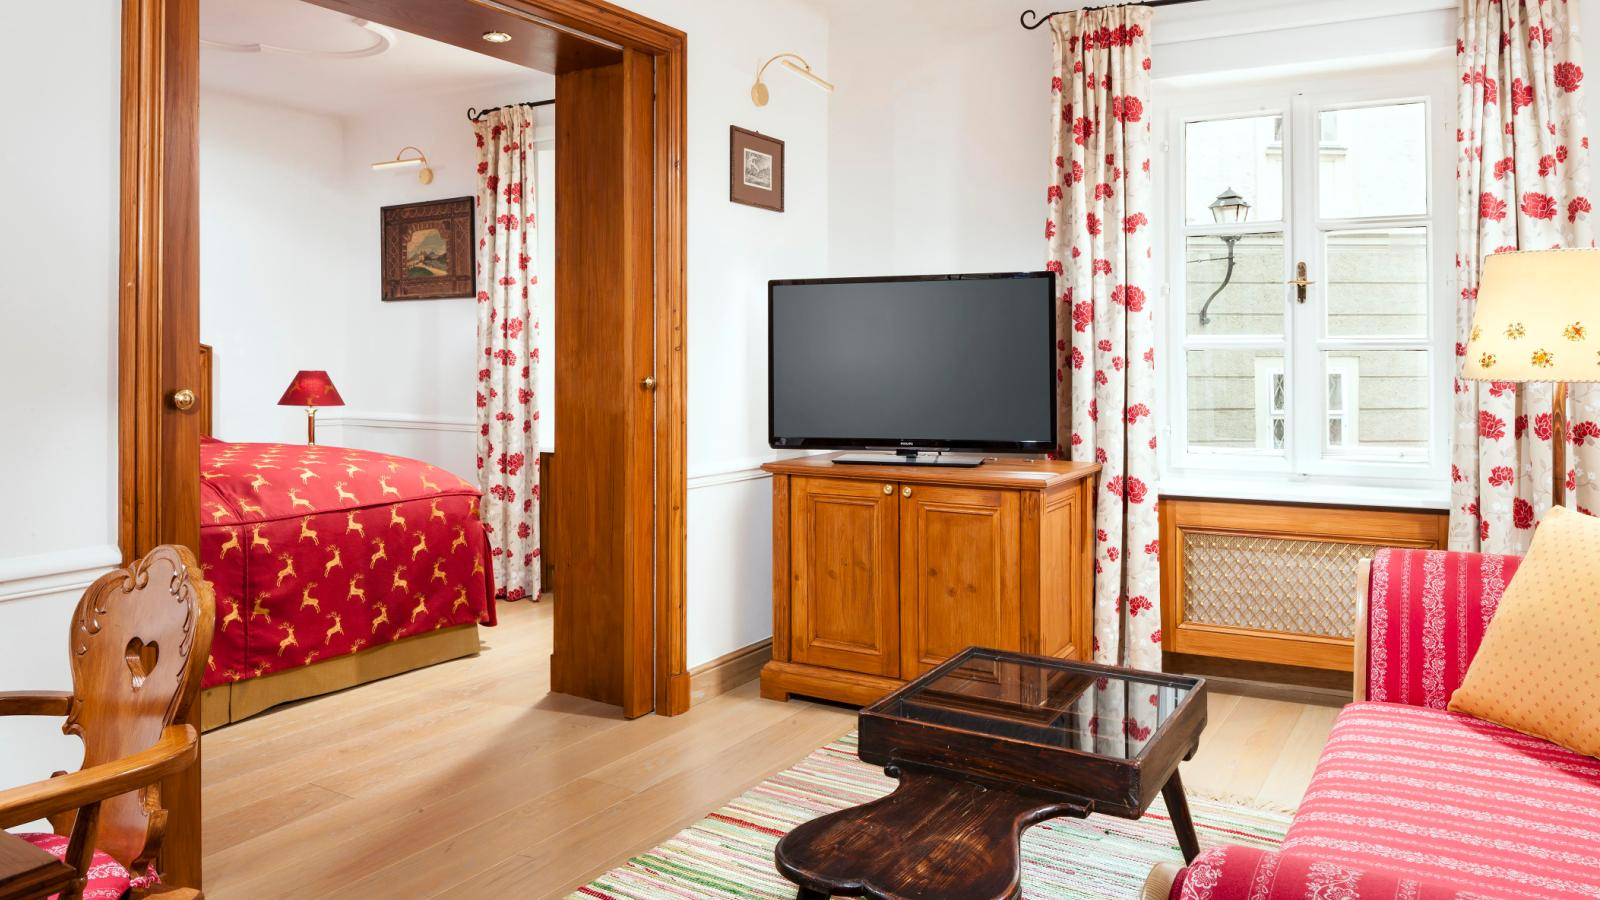 suite,family room,salzburg,tradition,getreidegasse,luxury,comfort,